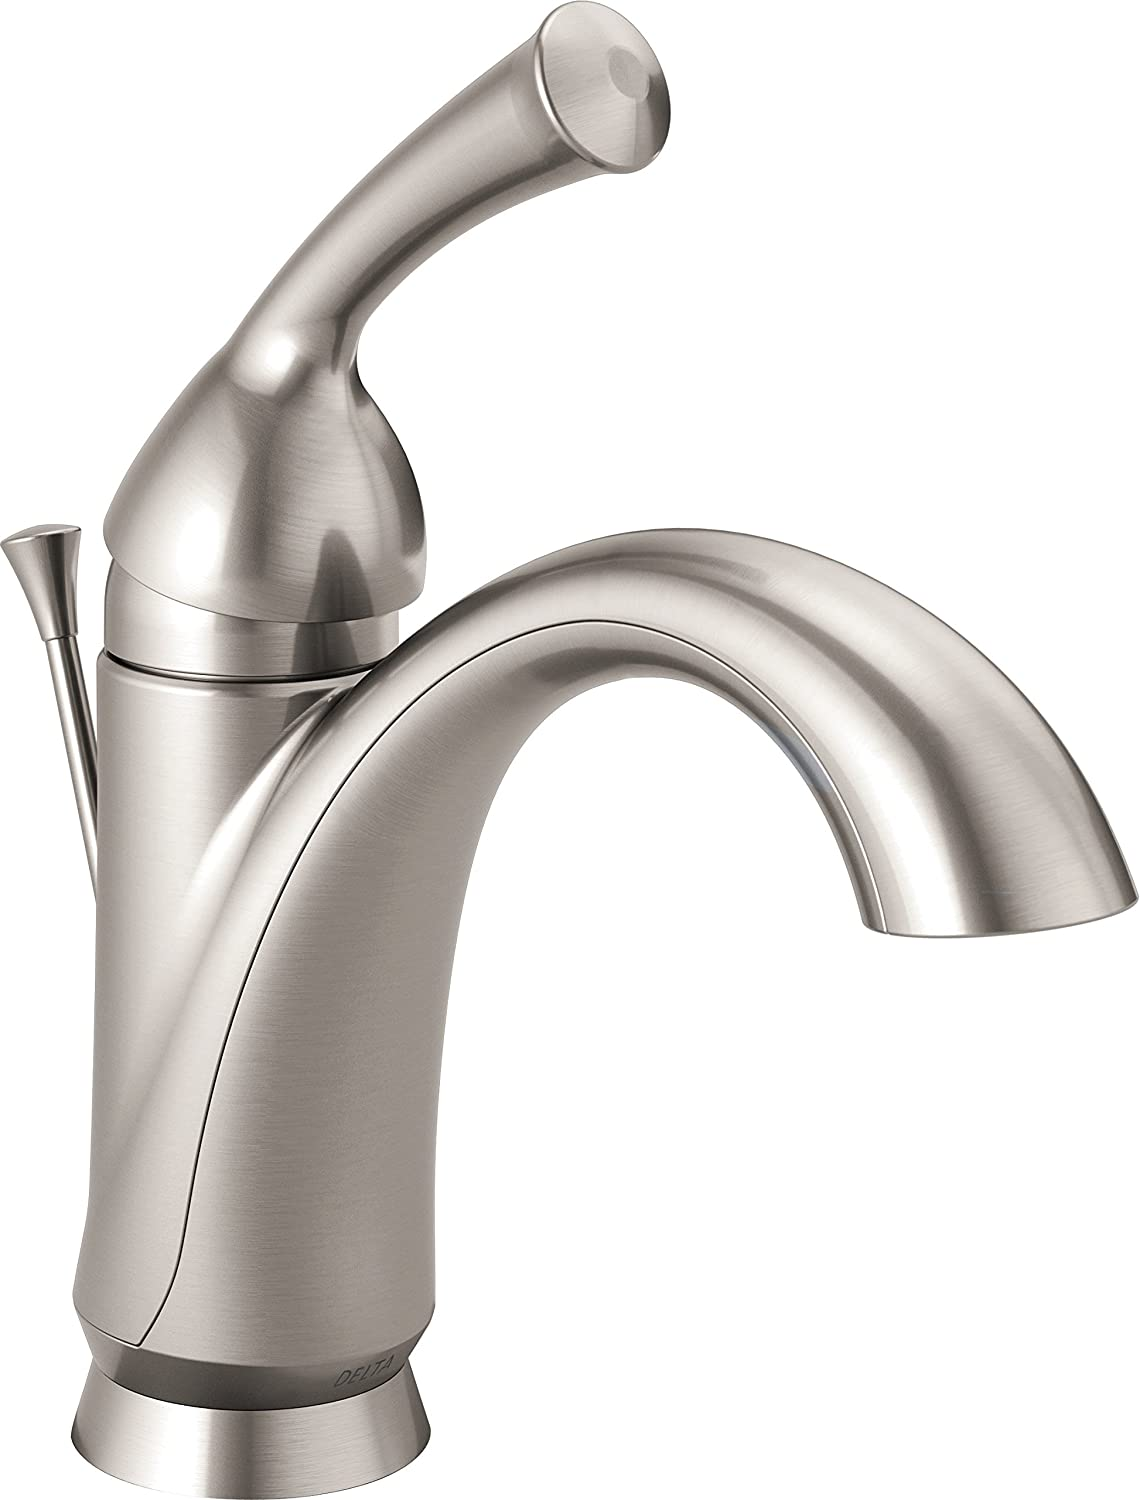 Delta Faucet Haywood Single-Handle Bathroom Faucet mit Diamond Seal Technology und Drain Assembly, Stainless 15999-Ss-Dst